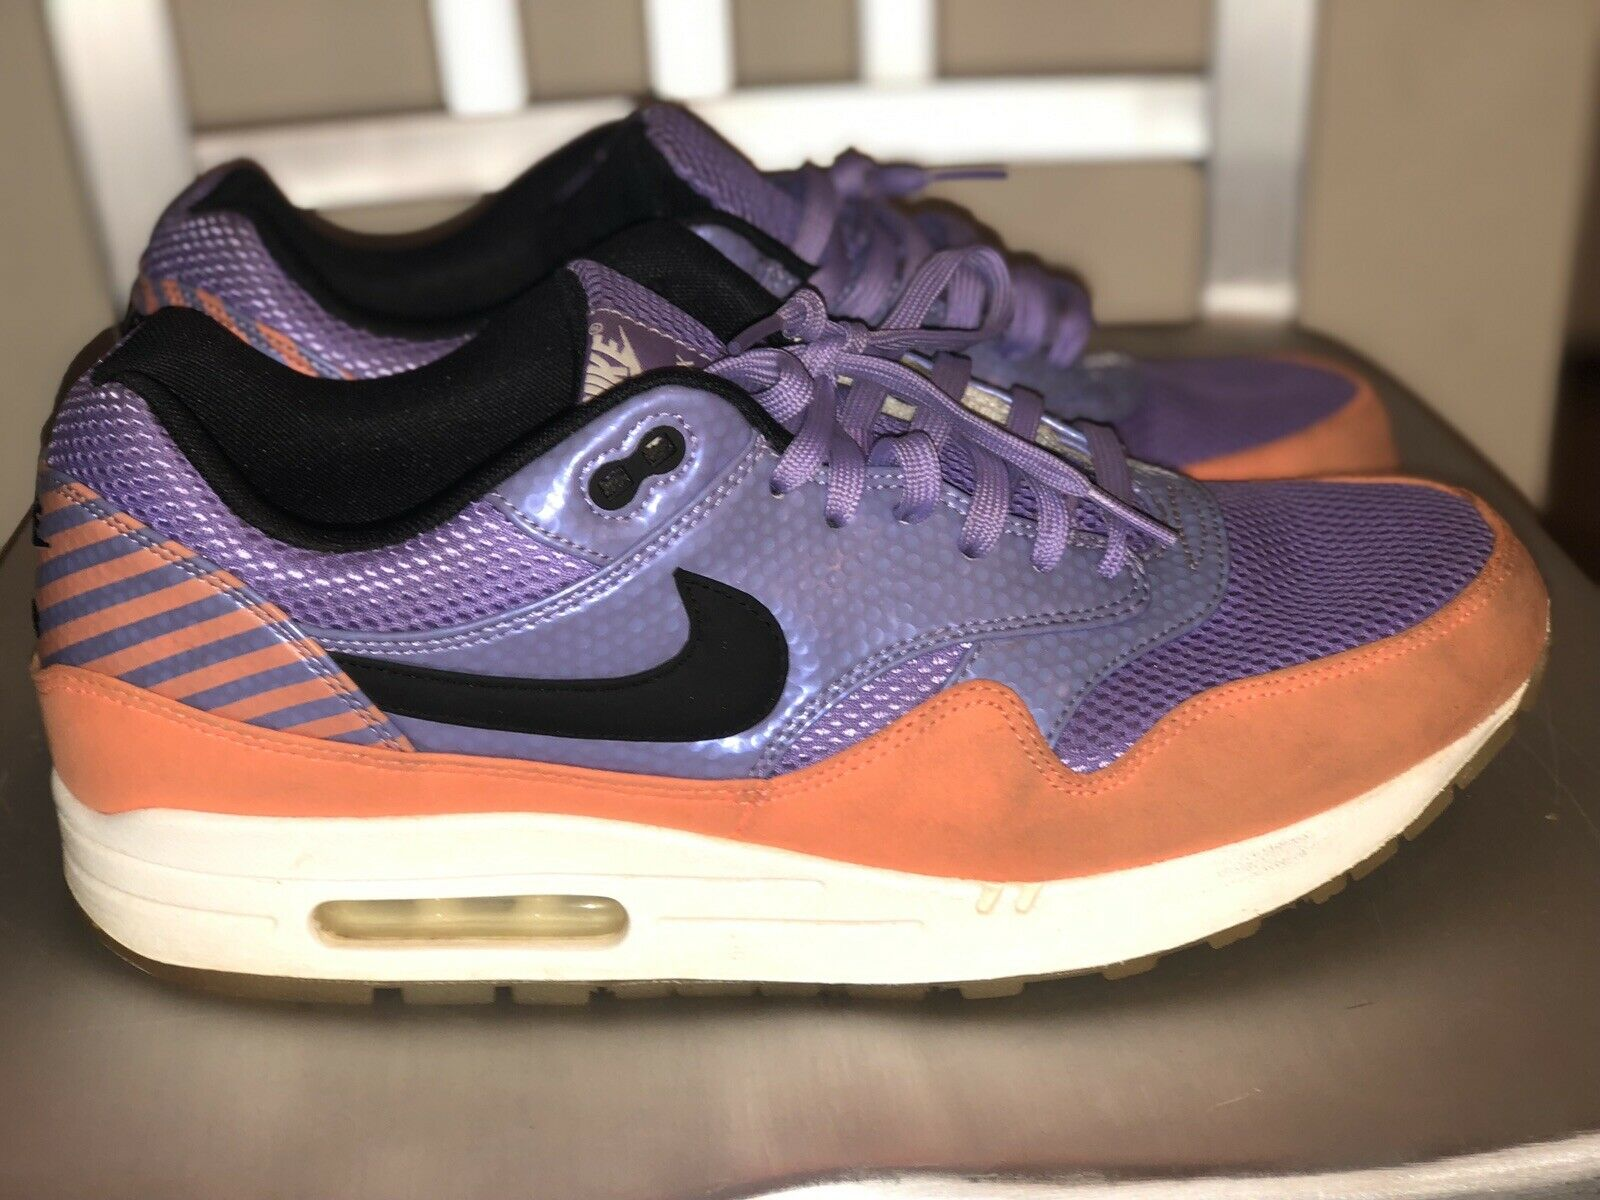 Nike Air Max 1 Premium Mercurial Pack FB Atomic Violet Black Orange Size 11.5